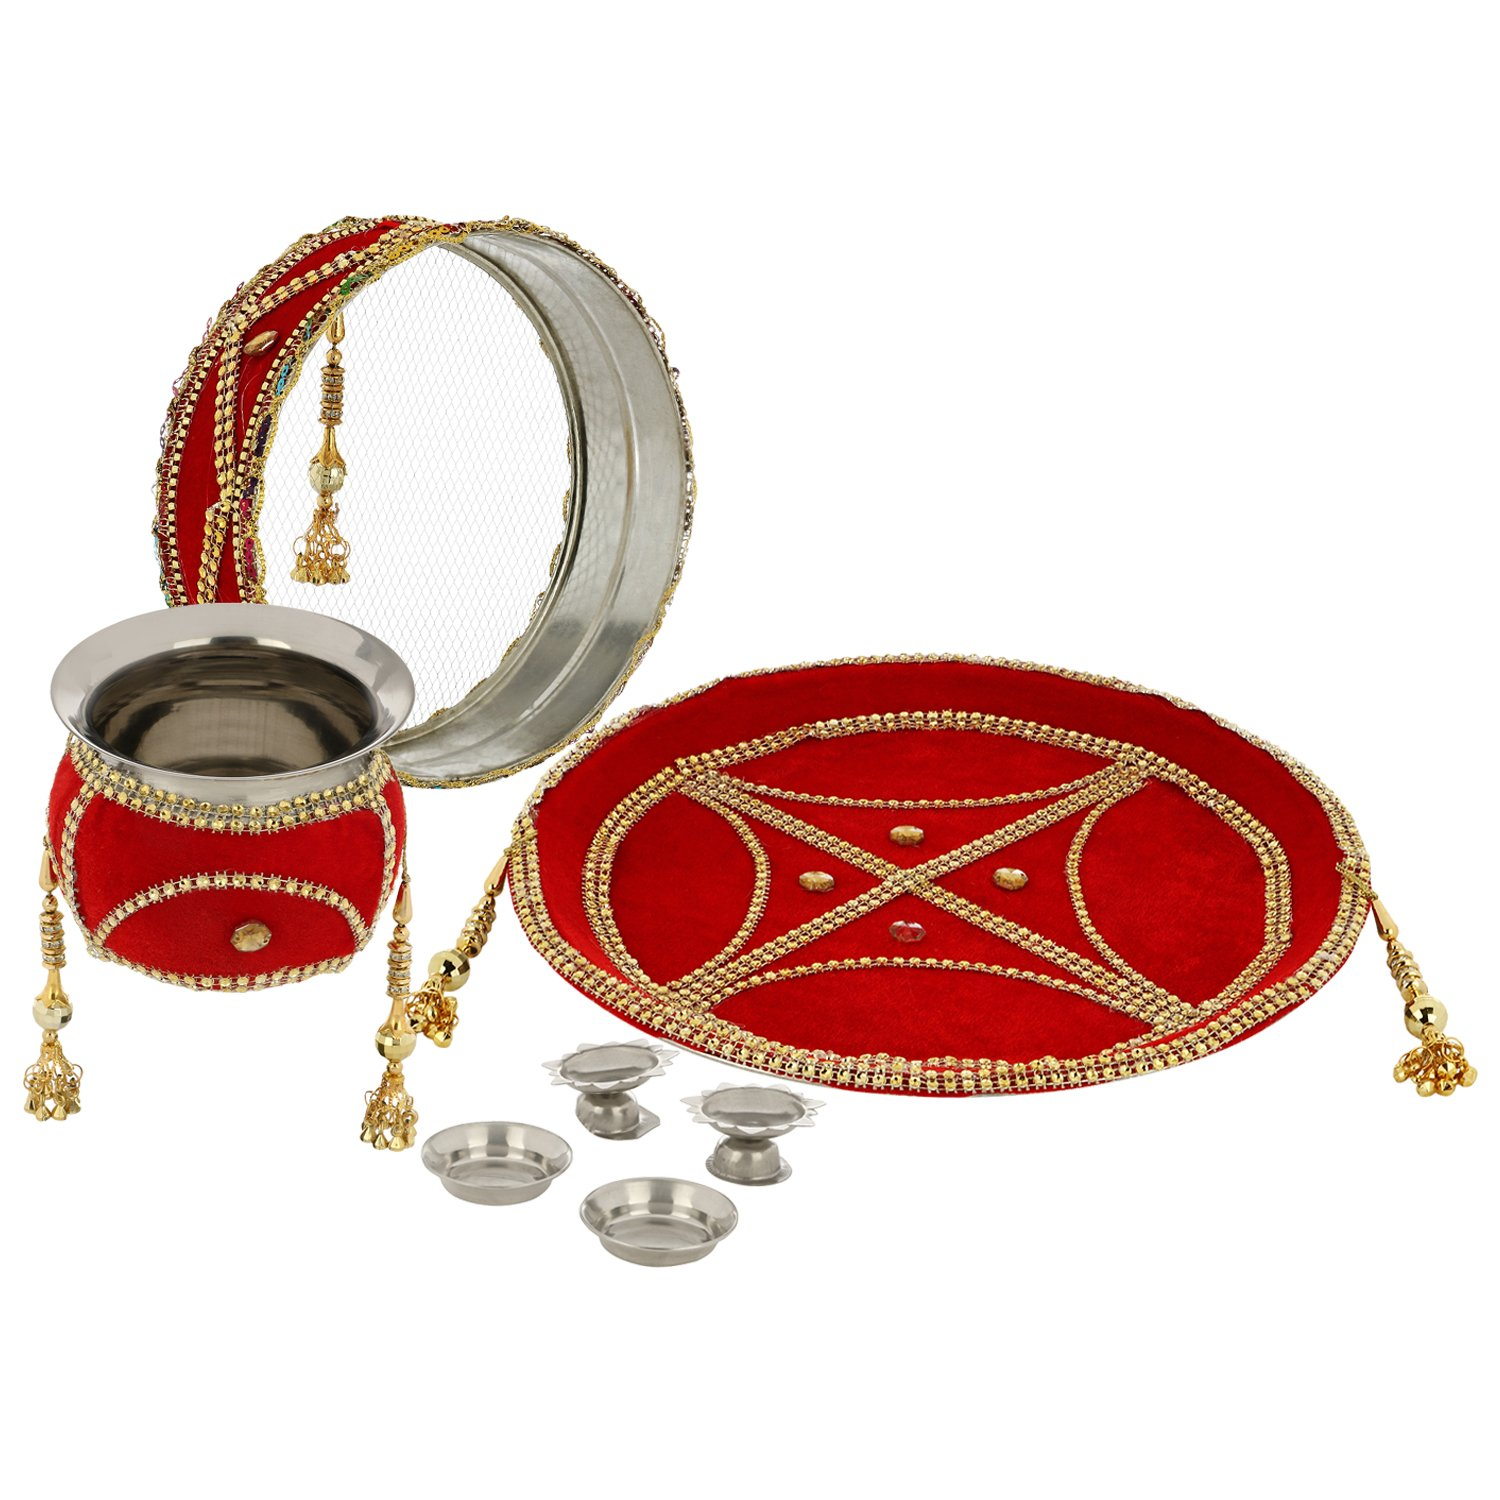 Buy Agastya Set Of 7 Red Golden Stainless Steel Pooja Thali Set 1 Pooja Plate 1 Lota 1 Channi 2 Dhoop Batti Stand 2 Katori Online At Low Prices In India Amazon In